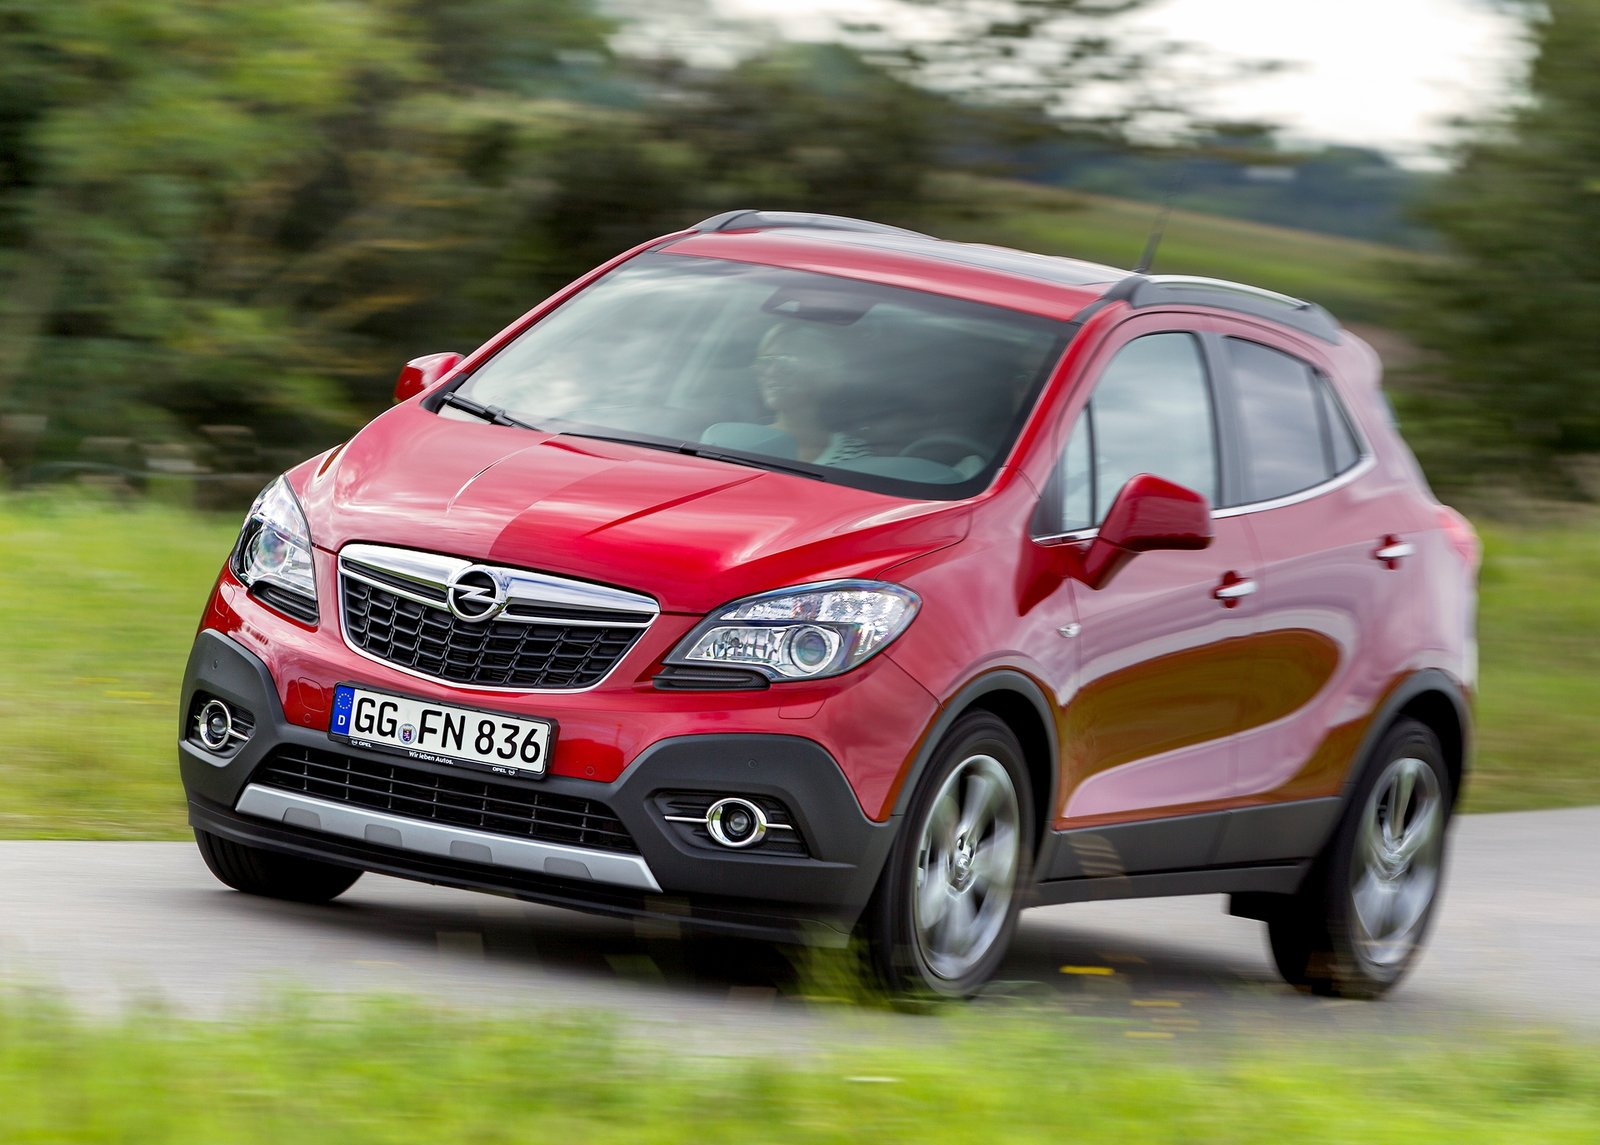 opel mokka 1 8 2013 technical specifications interior and exterior photo. Black Bedroom Furniture Sets. Home Design Ideas